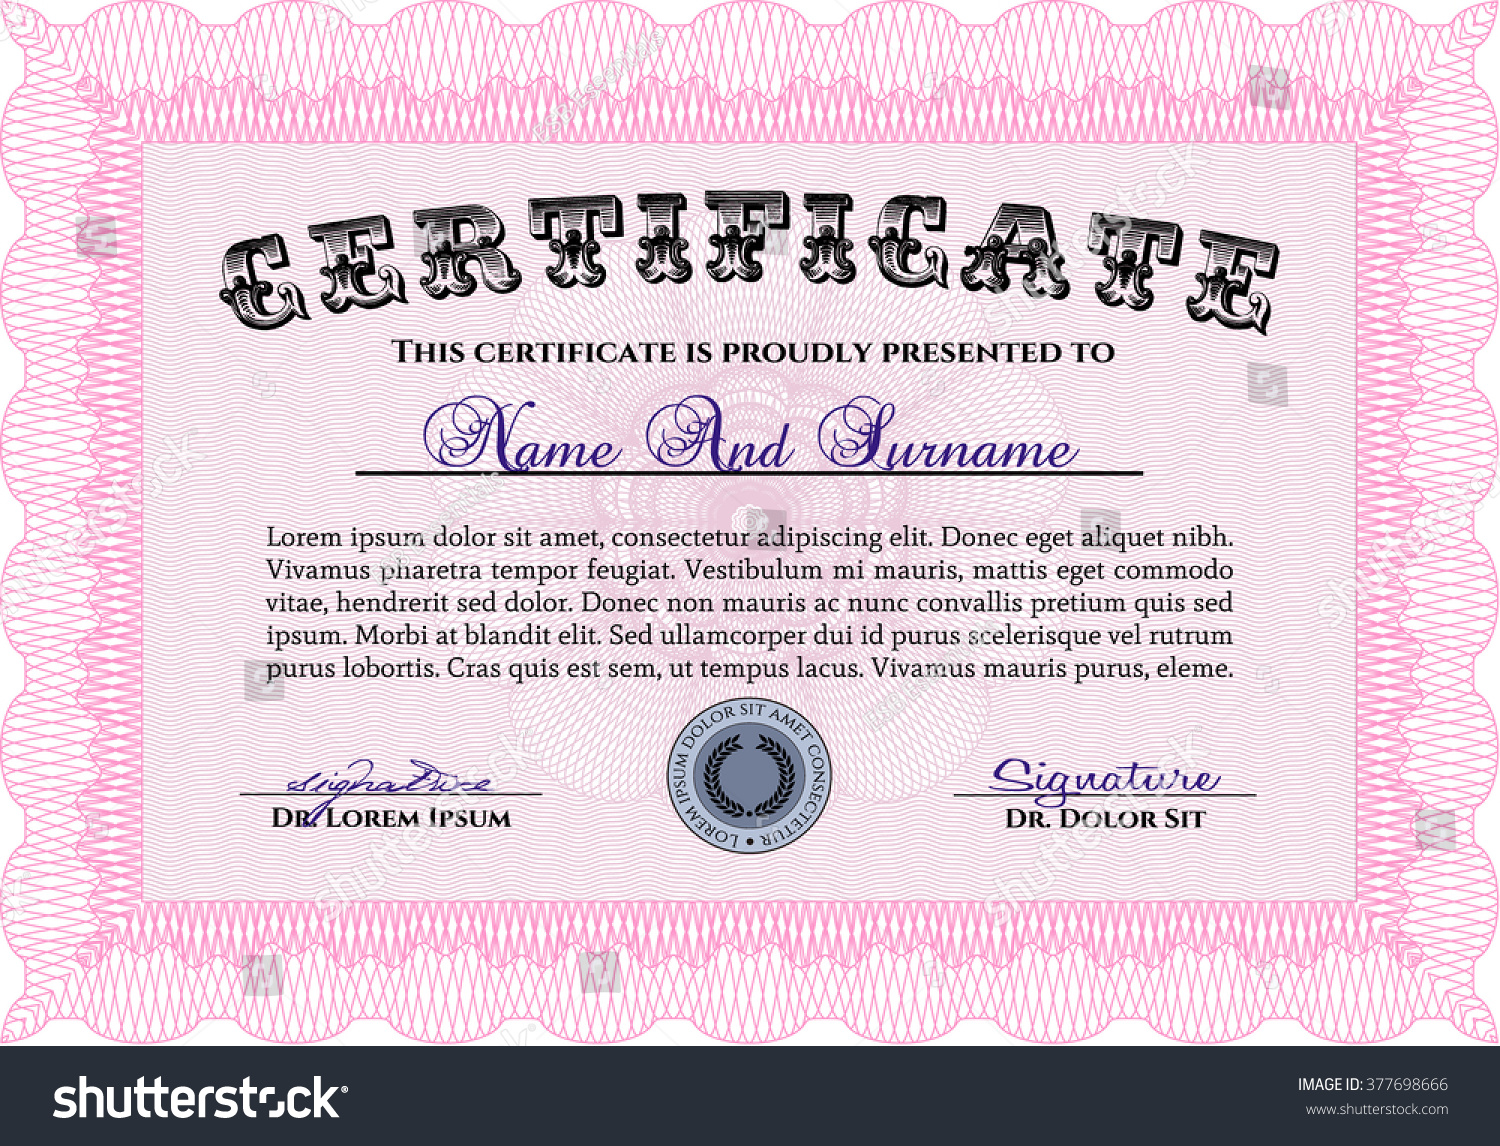 Reiki certificate template vector images certificate design and doc494382 sample certificate of appreciation samples of written xflitez Gallery